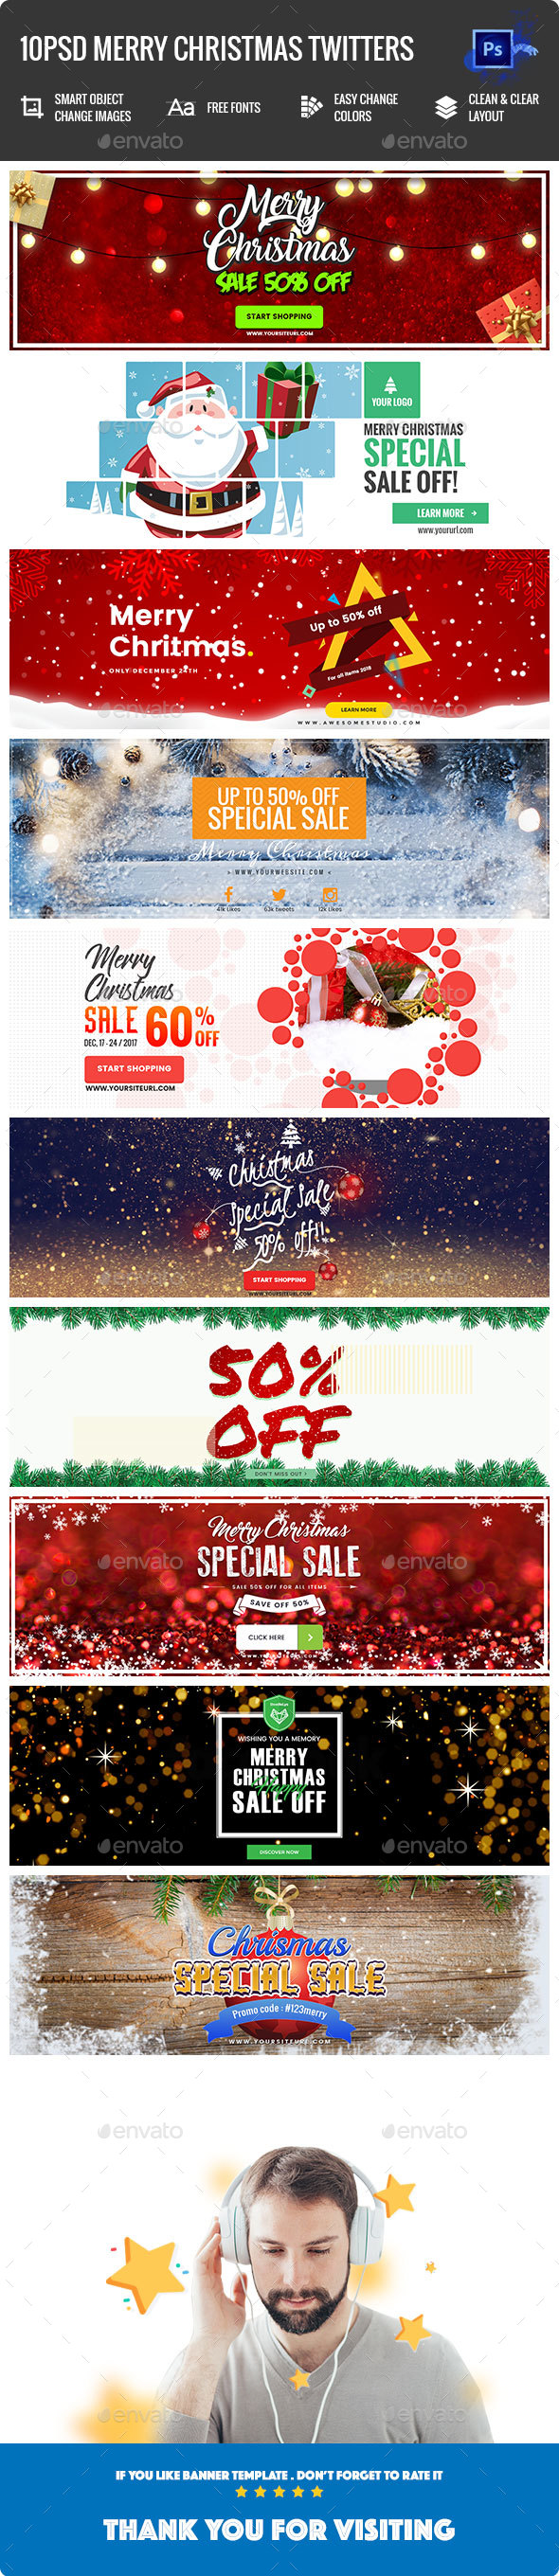 GraphicRiver Merry Christmas Twitter Headers 10PSD 21147381